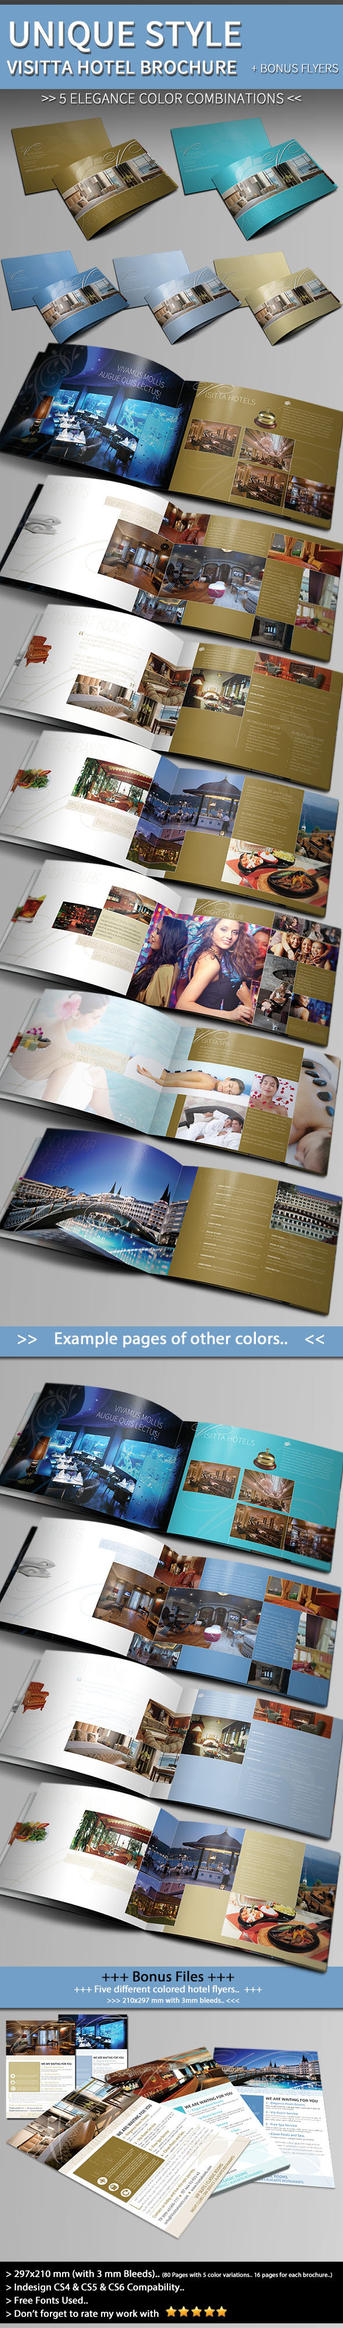 Unique Hotel Brochure + Flyer Template by BALKAy